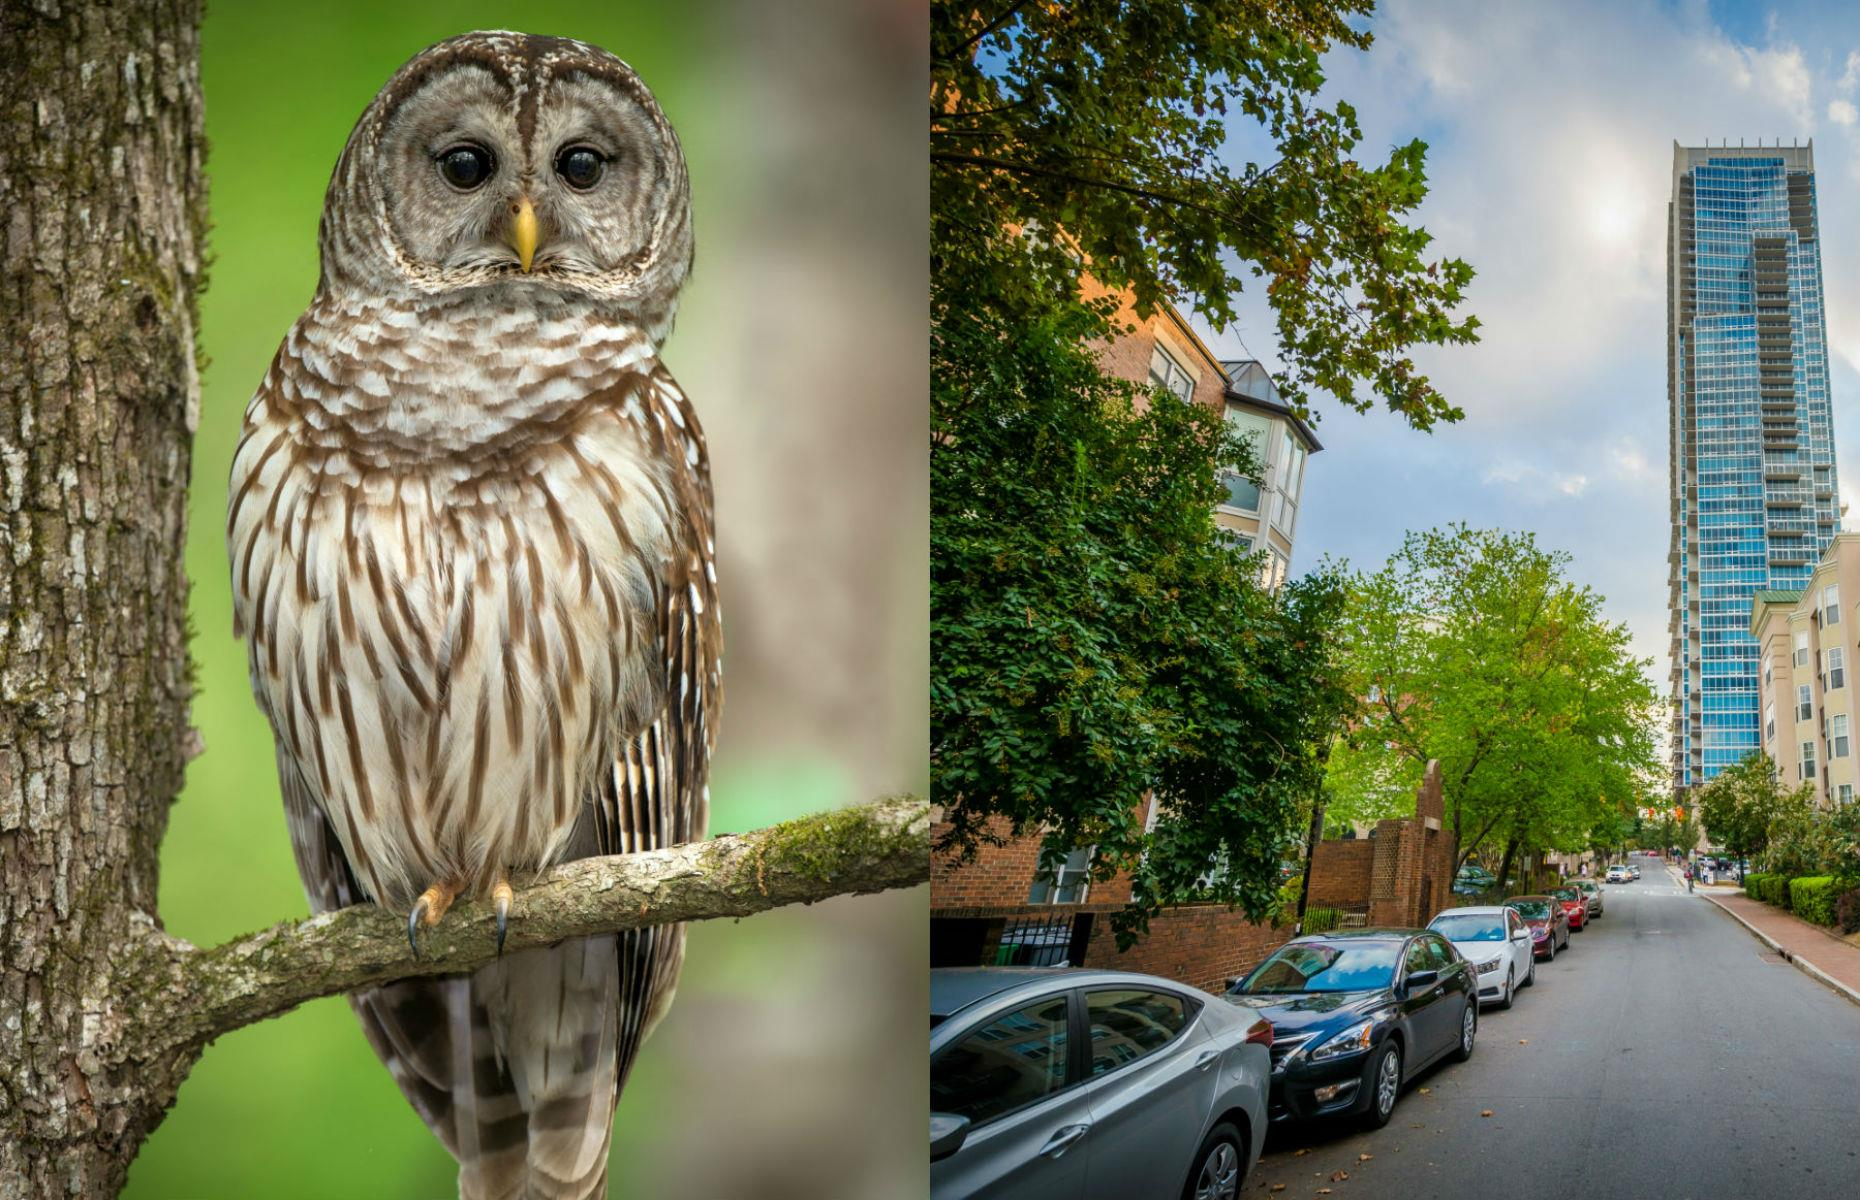 Slide 8 of 31: Life in Charlotte, North Carolina, is a hoot thanks to the large population of beautiful barred owls, identifiable by their brown and white striped plumage. You're most likely to see them in the older neighborhoods that have large trees in which these beautiful birds roost.